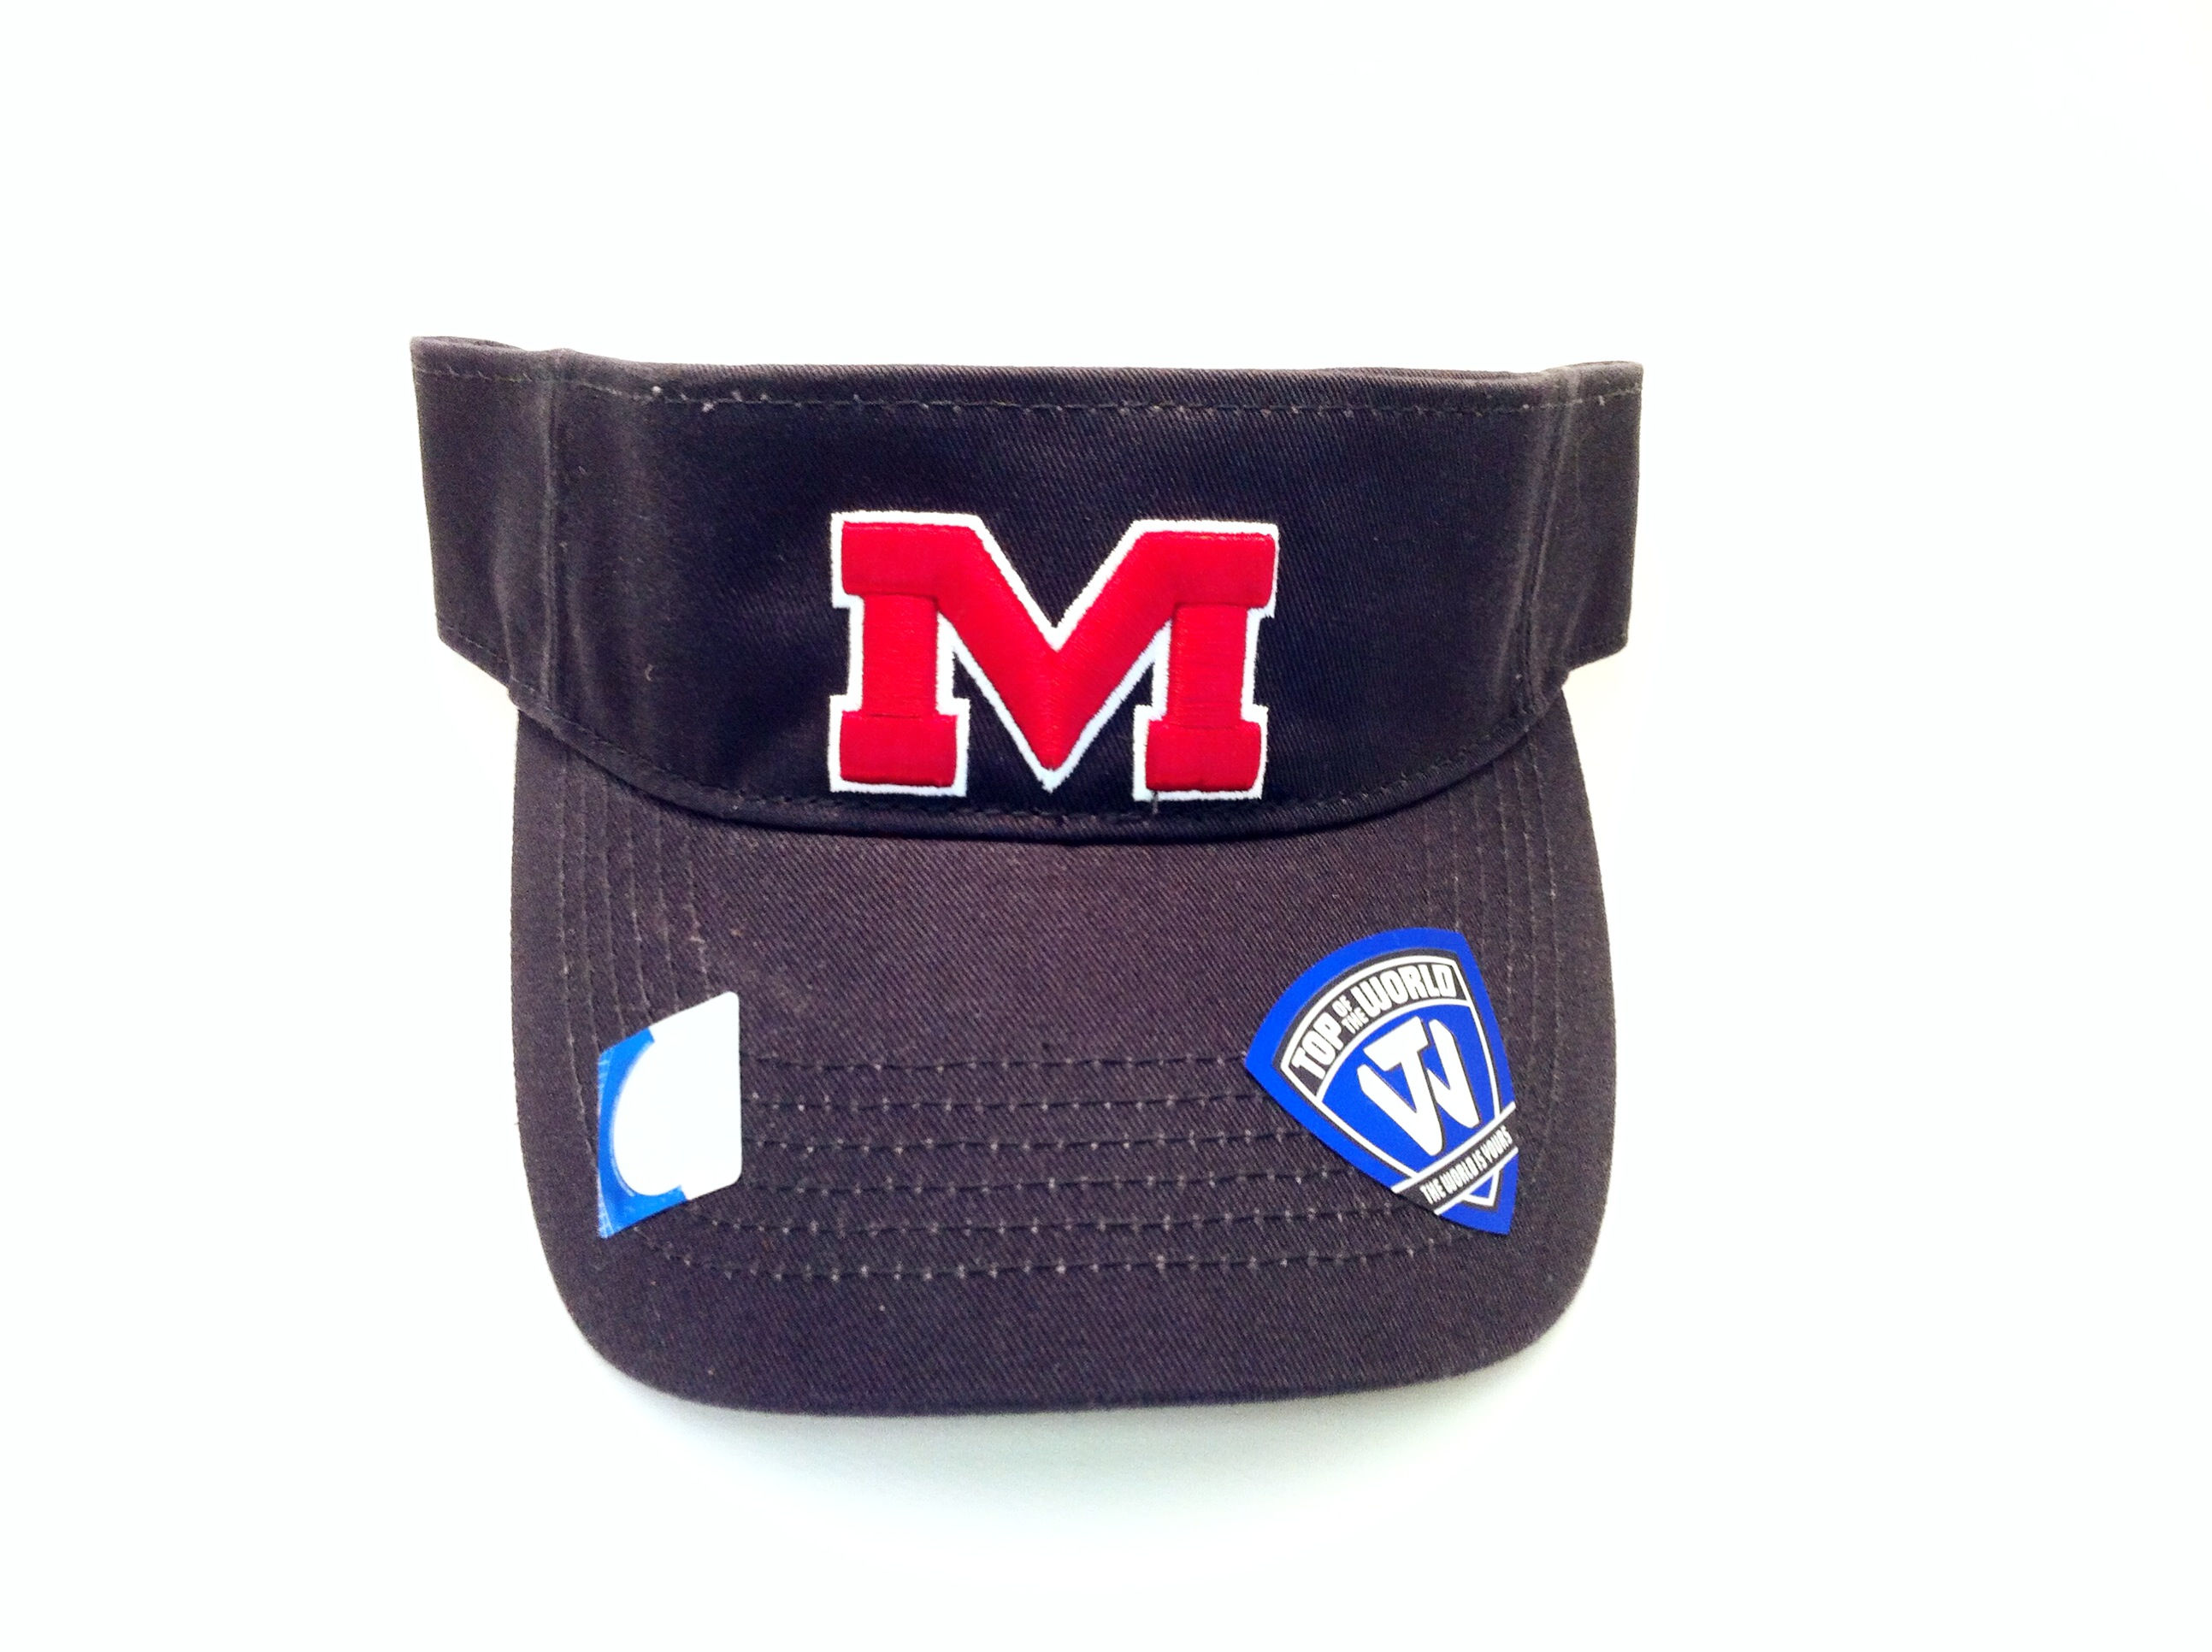 Birdie Visor - Navy with Red M